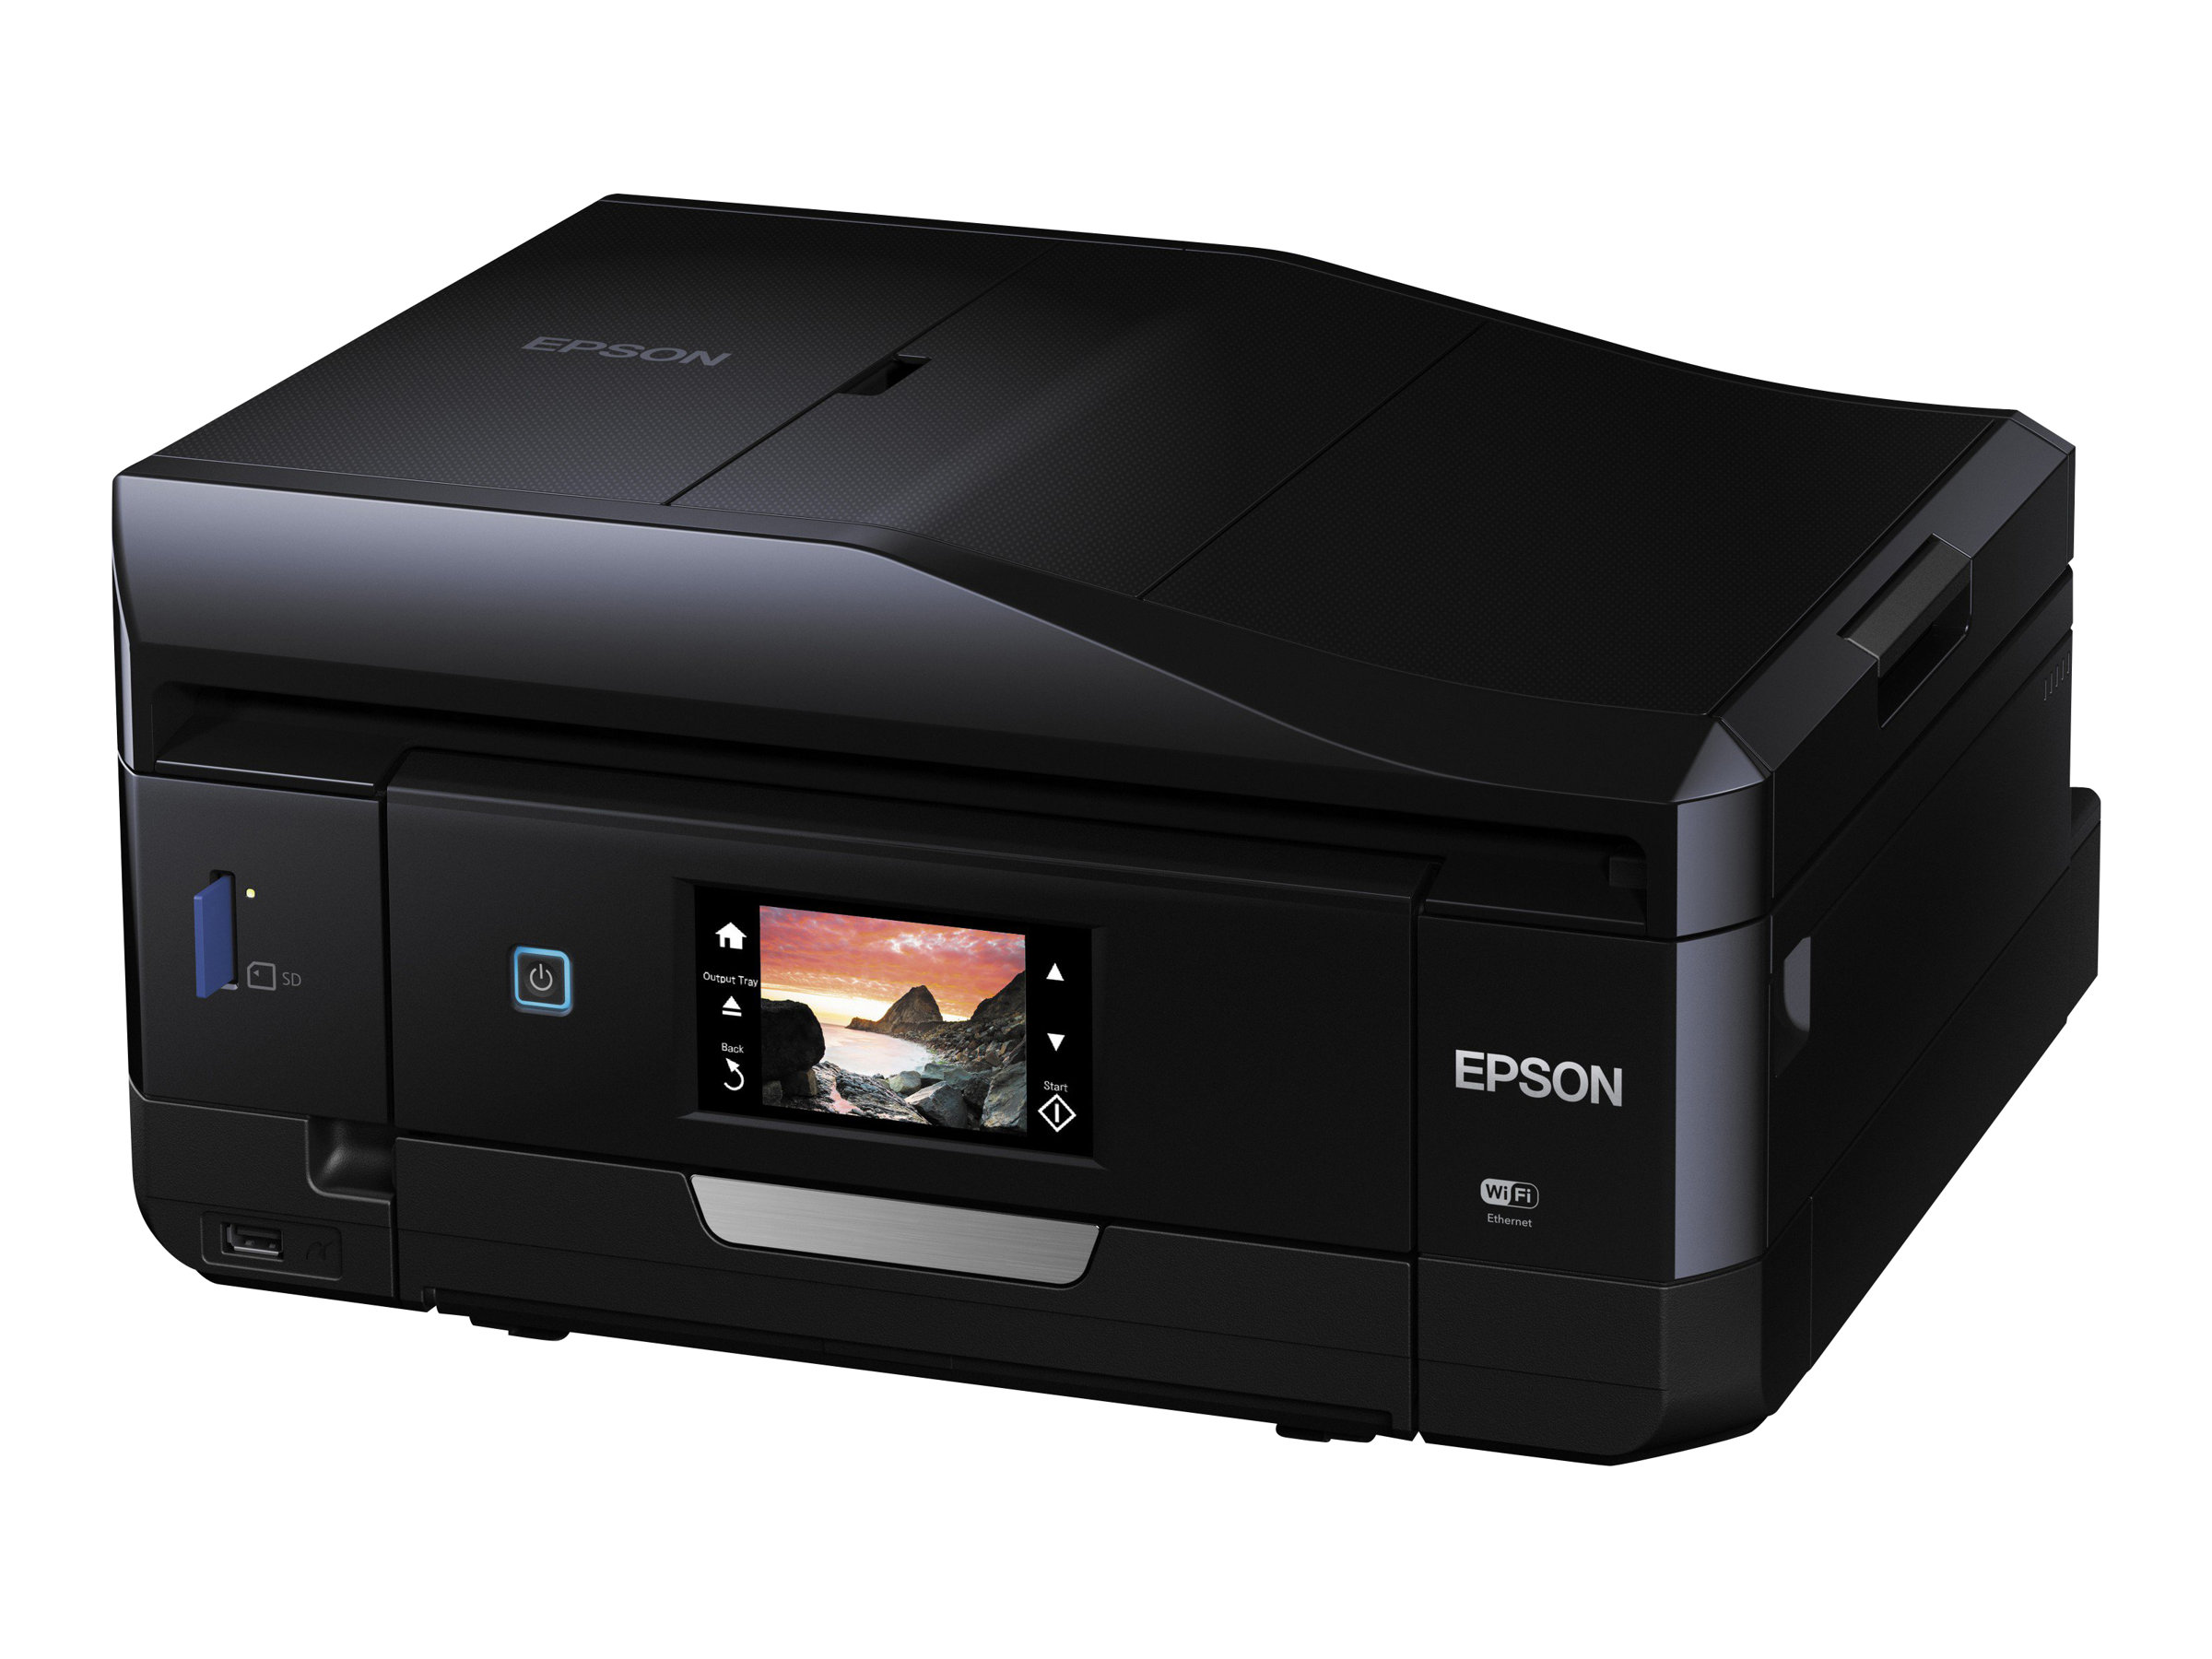 Epson Expression Photo XP-860 - Multifunktionsdrucker - Farbe - Tintenstrahl - A4 (210 x 297 mm), Letter A (216 x 279 mm) (Original) - A4/Legal (Medien)